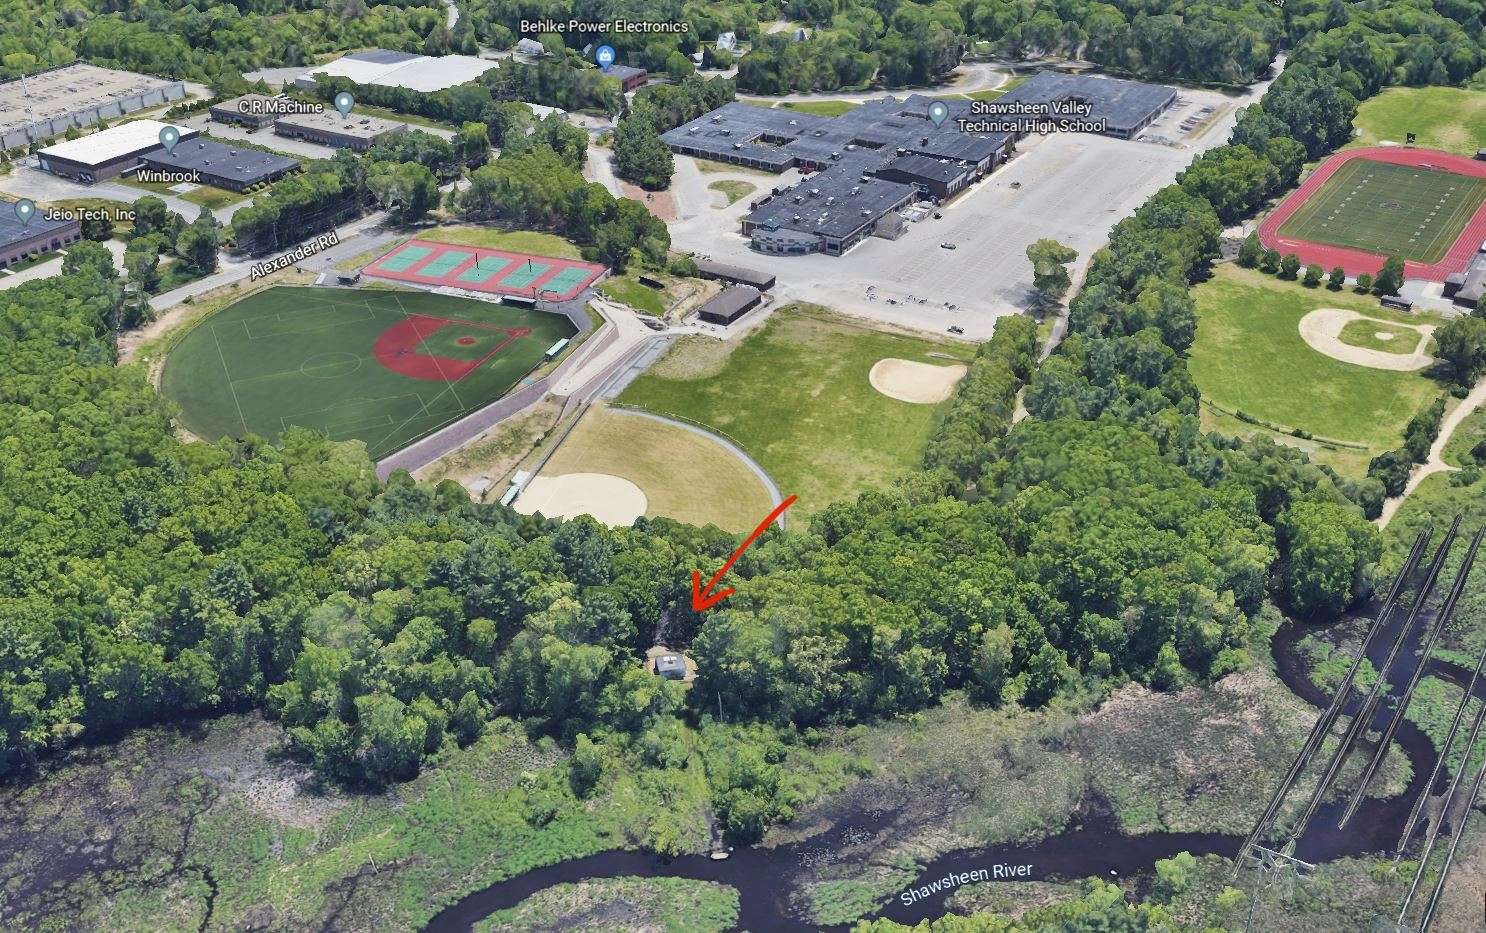 Shawsheen Valley Technical High School aerial